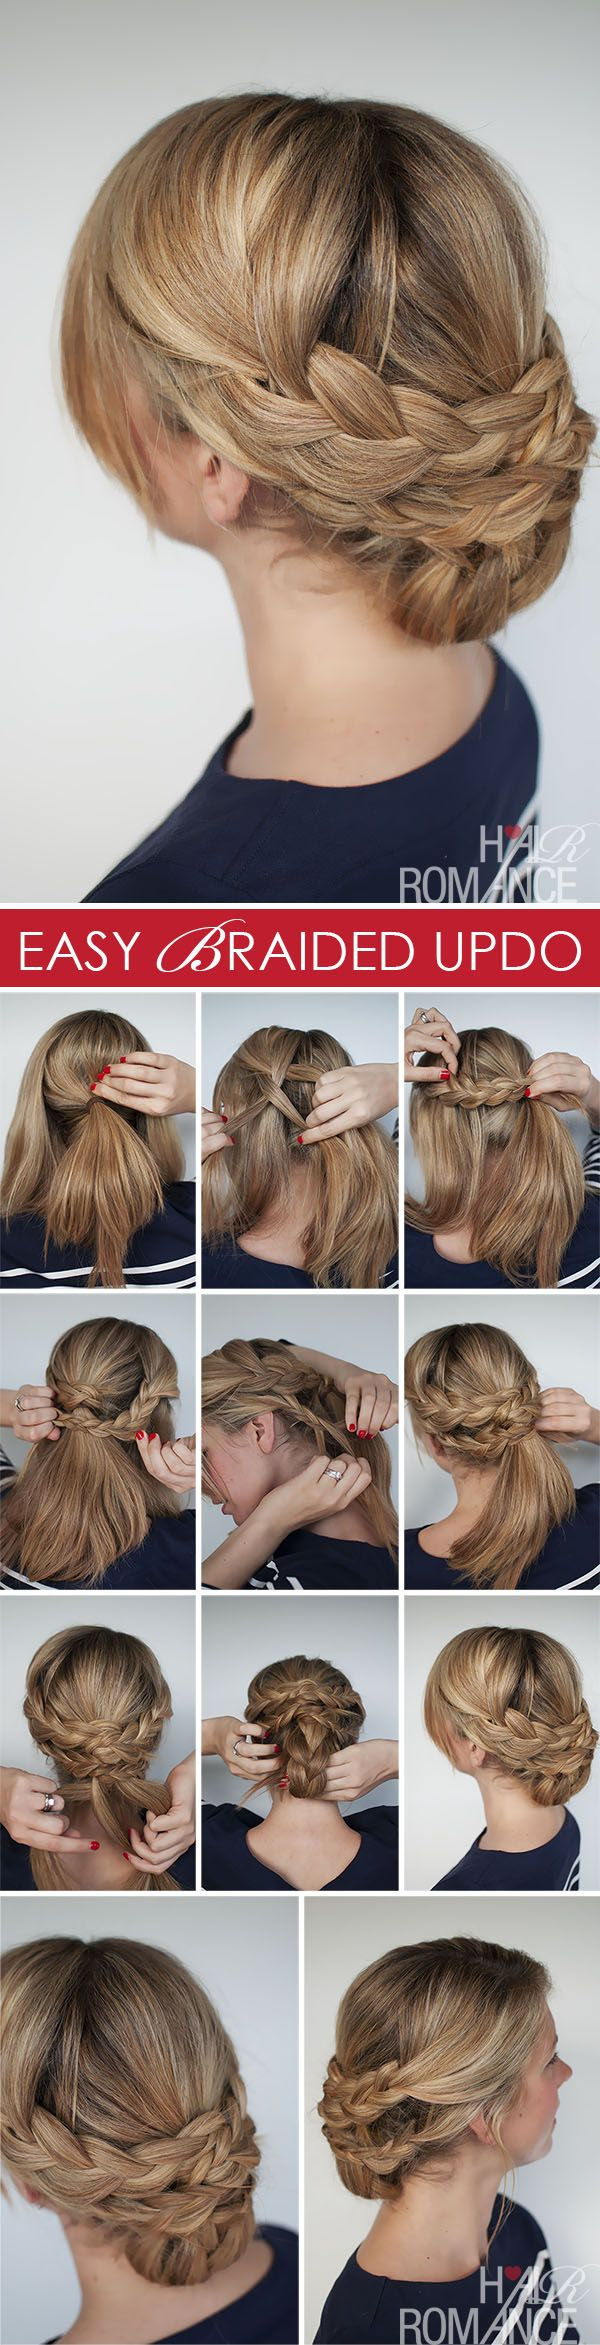 Strange 1000 Images About Simple Hairstyles On Pinterest Chignons Short Hairstyles Gunalazisus